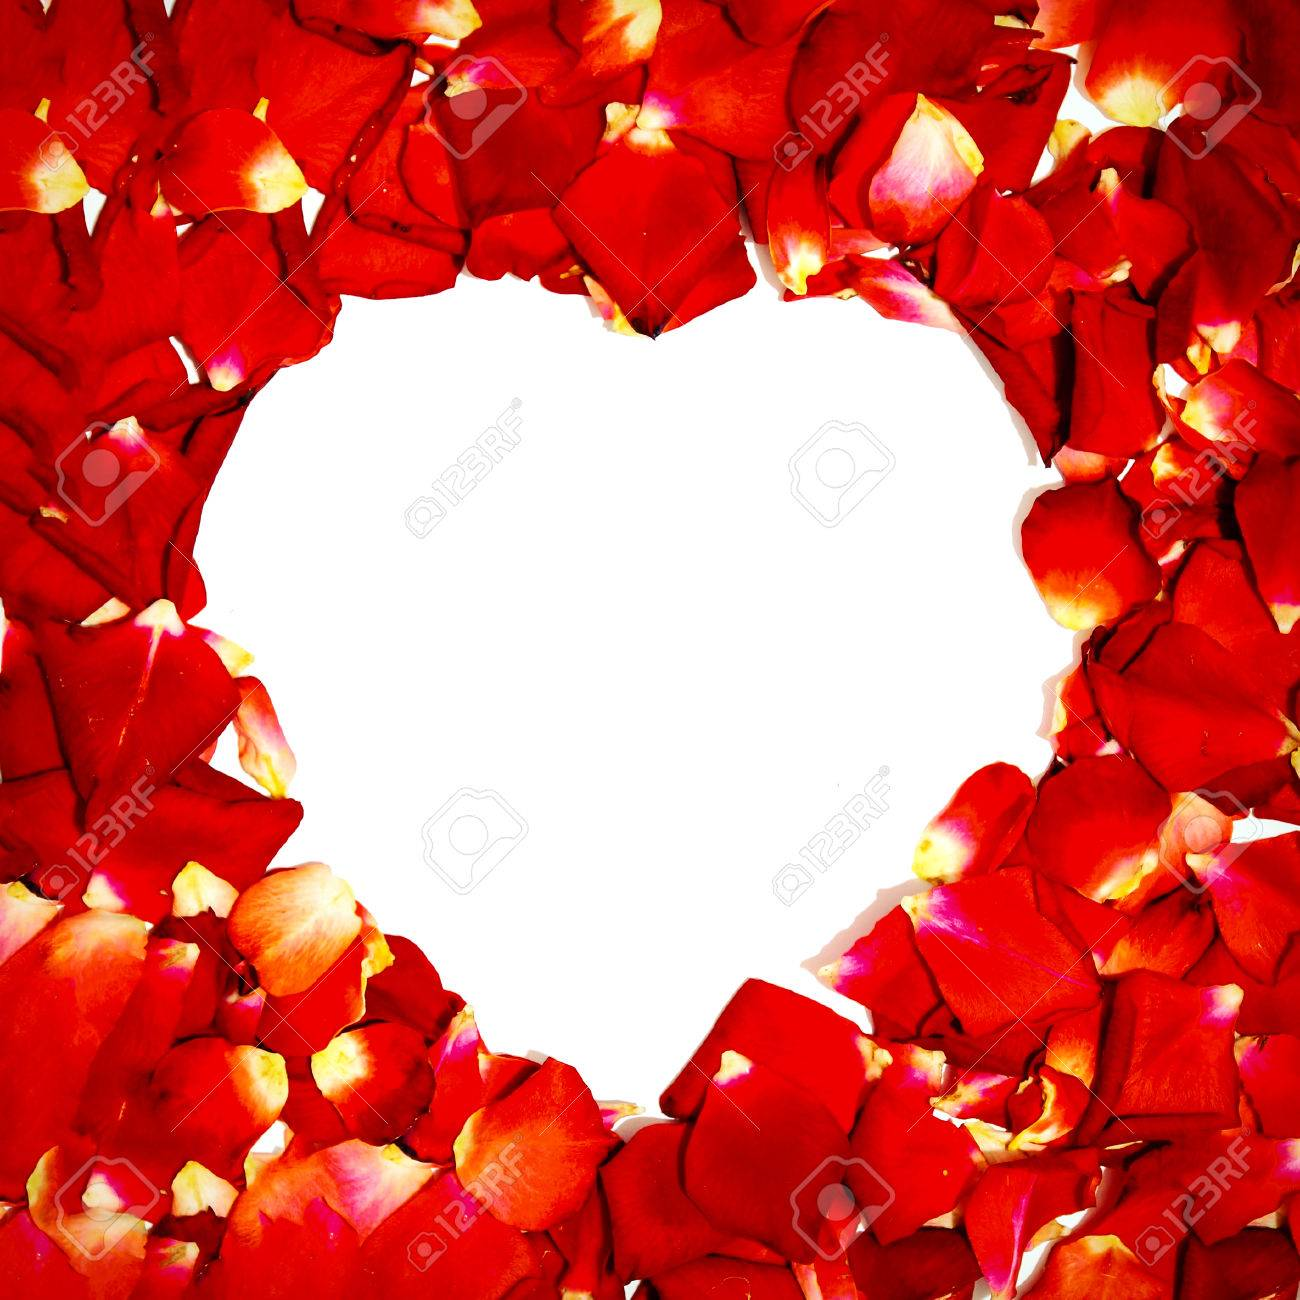 Background Of Beautiful Red Rose Petals Love Heart